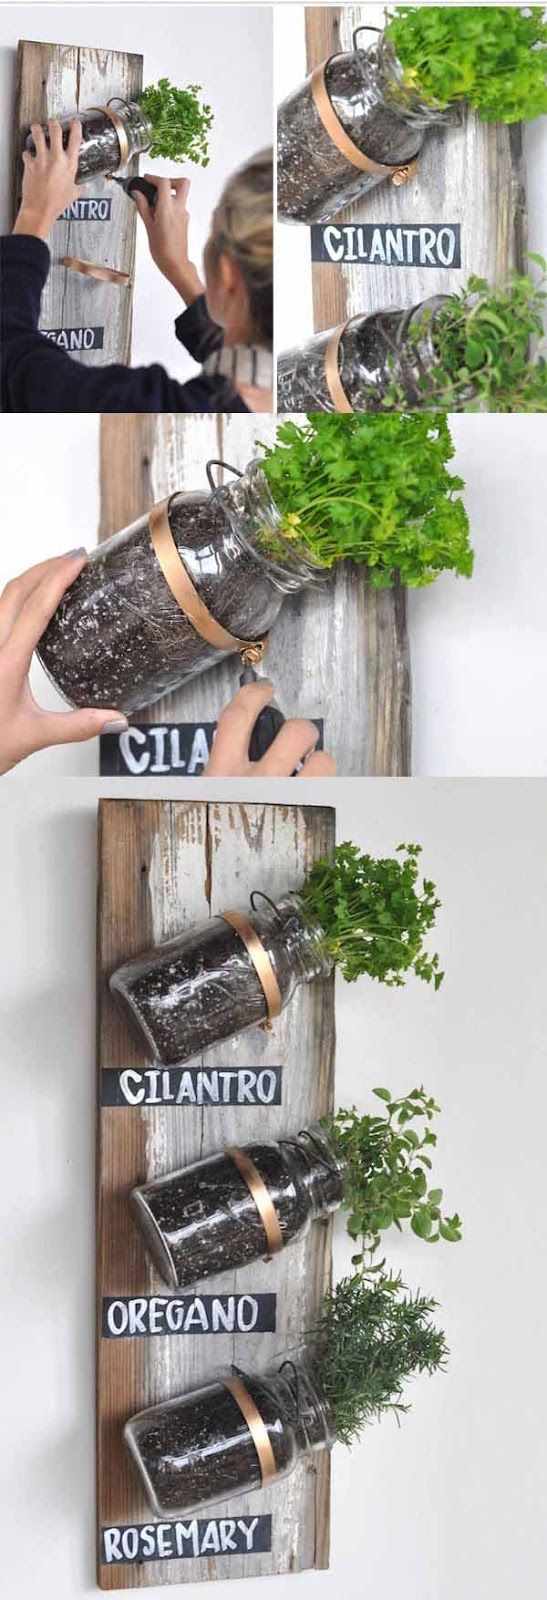 Even if you don't have a backyard or a spacious kitchen, you can have an herb garden using mason jars!Ideas, Mason Jar Herbs, Indoor Herbs, Herb Garden, Fresh Herbs, Herbs Gardens, Mason Jars Herbs, Plants Fresh, Entire Yards